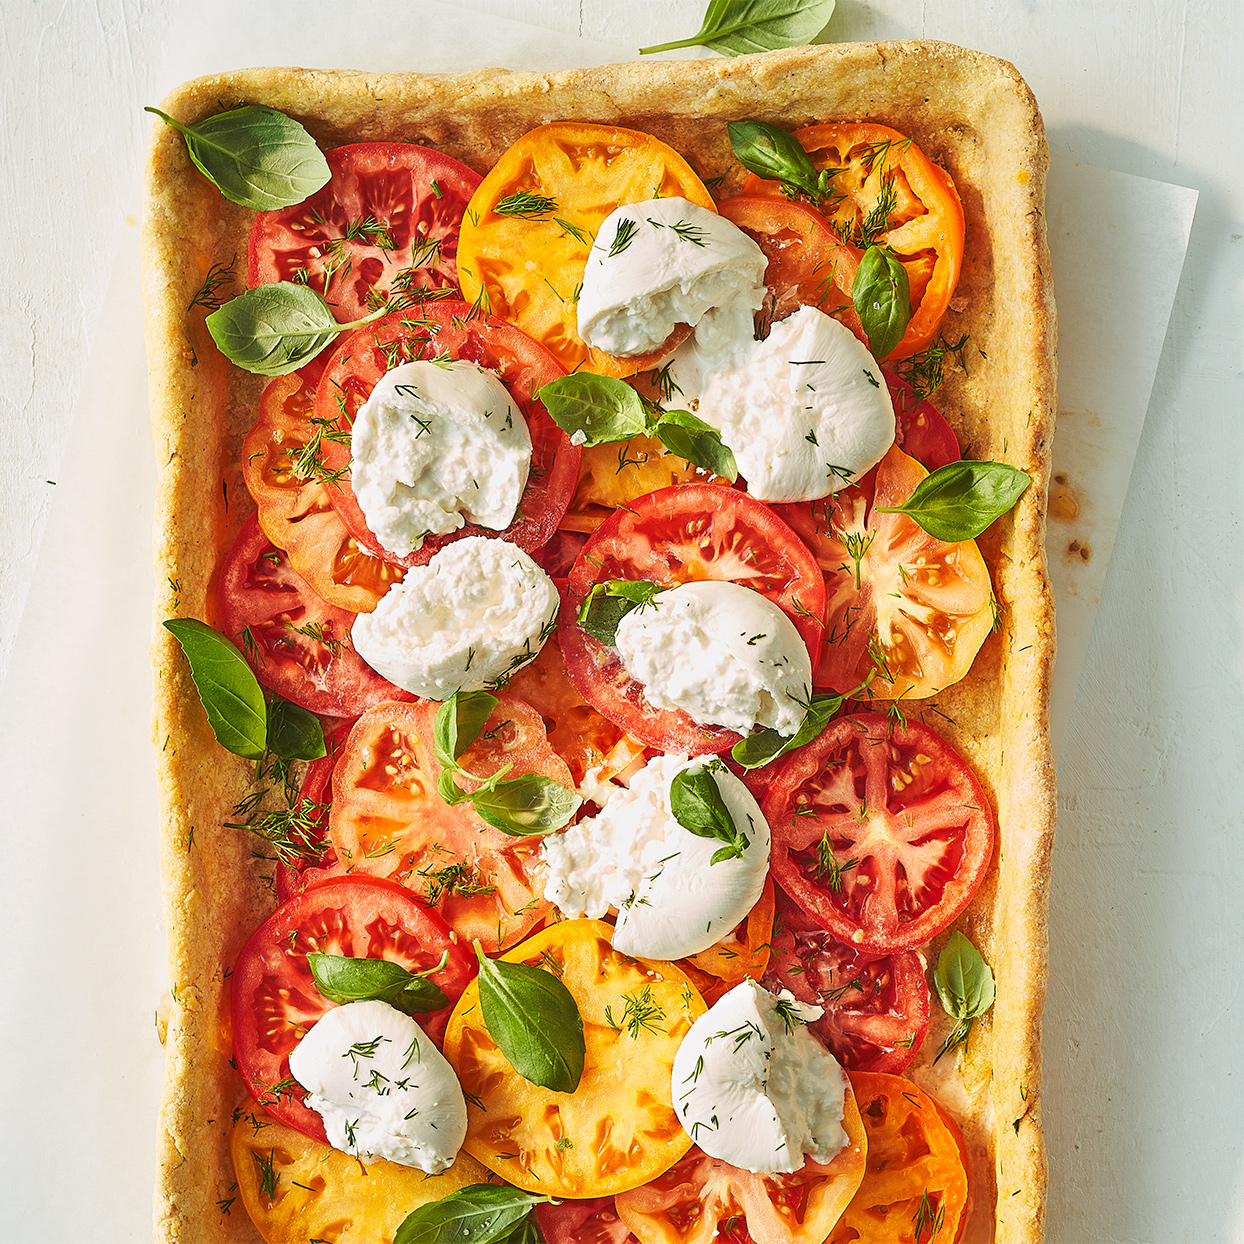 Tomato Tart with Burrata Trusted Brands